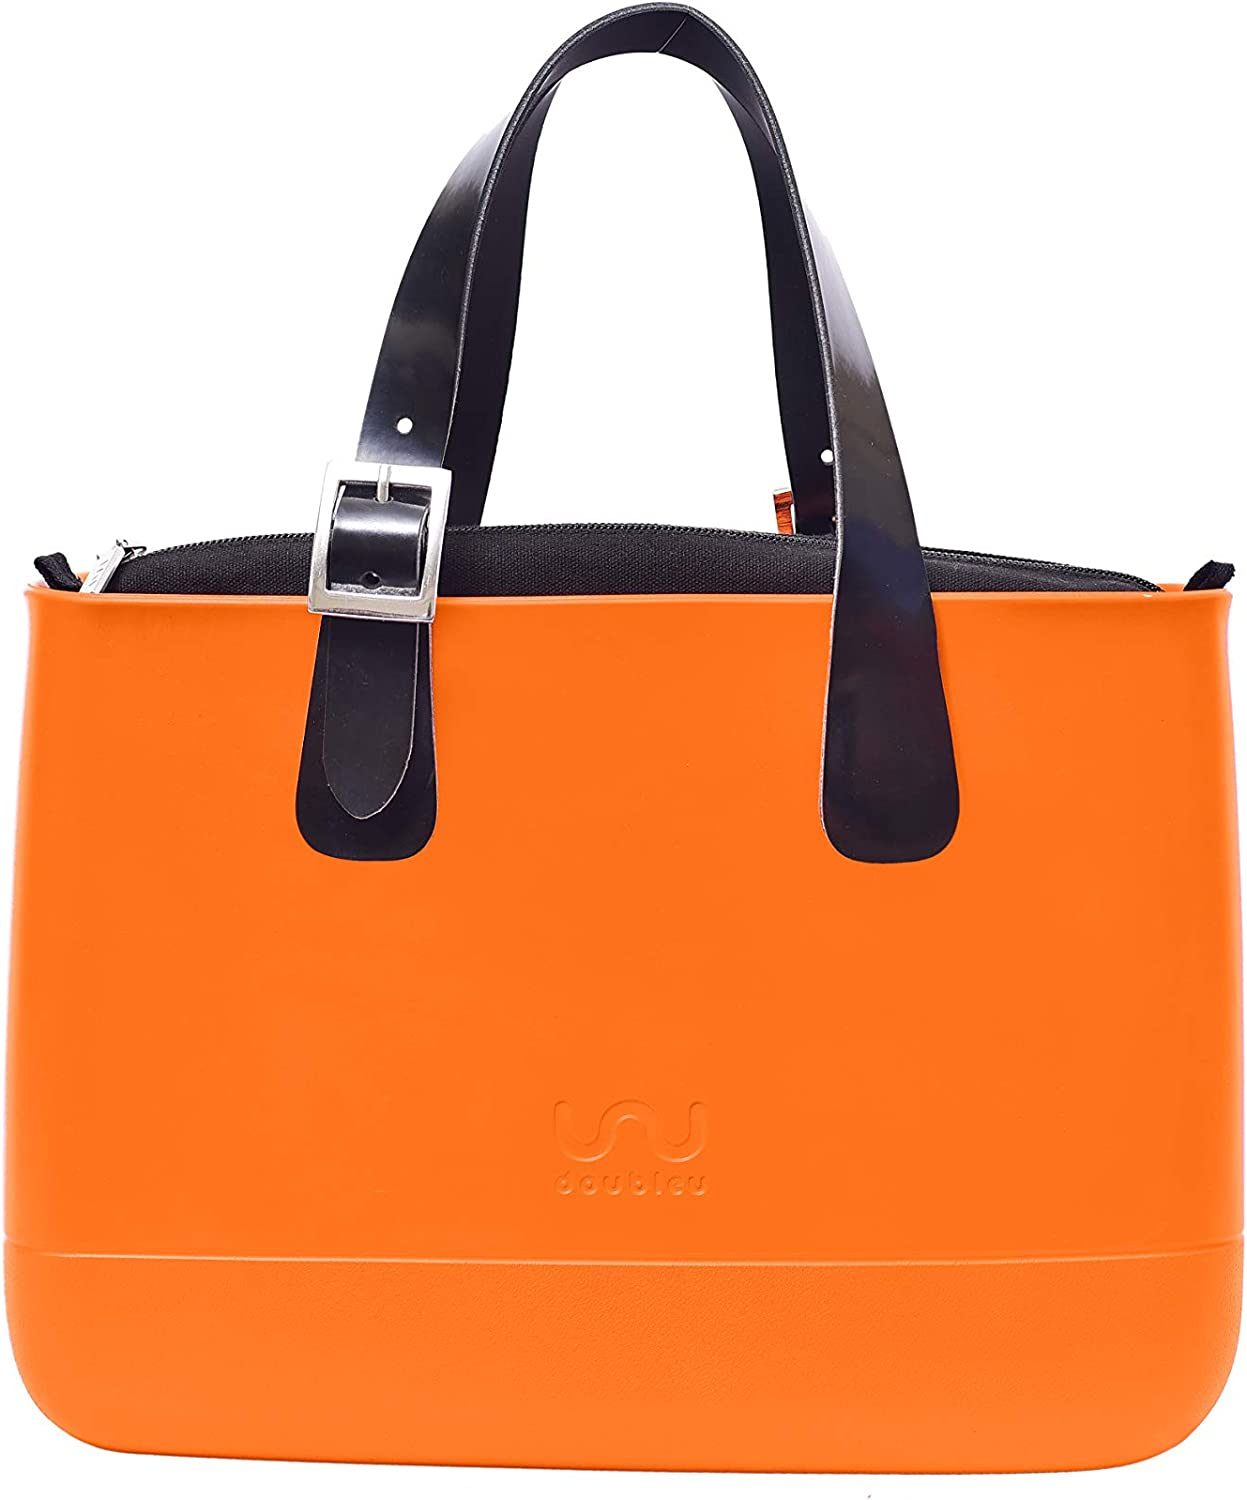 Doubleu - Outlet sale feature Women tote bag Ranking TOP20 women and work Designer bags